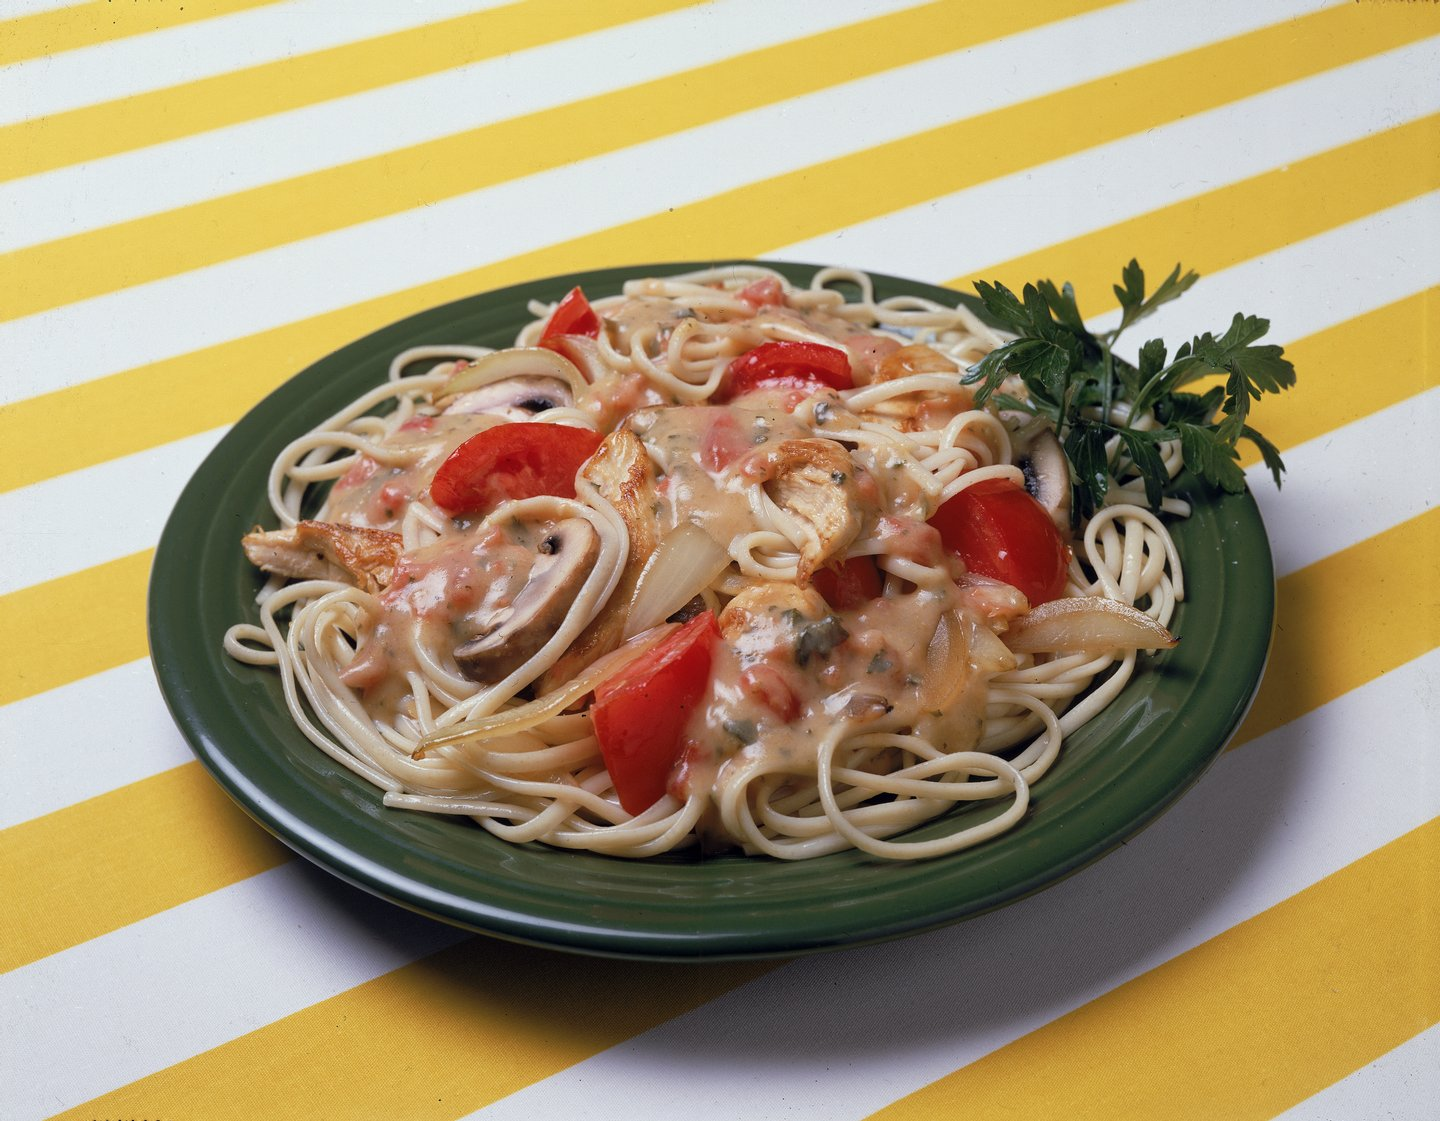 A dish of Italian-style pasta noodles with a chicken, onion, mushroom, and tomato sauce, and parsley, sits on a yellow and white striped surface, 1970s. (Photo by Hulton Archive/Getty Images)